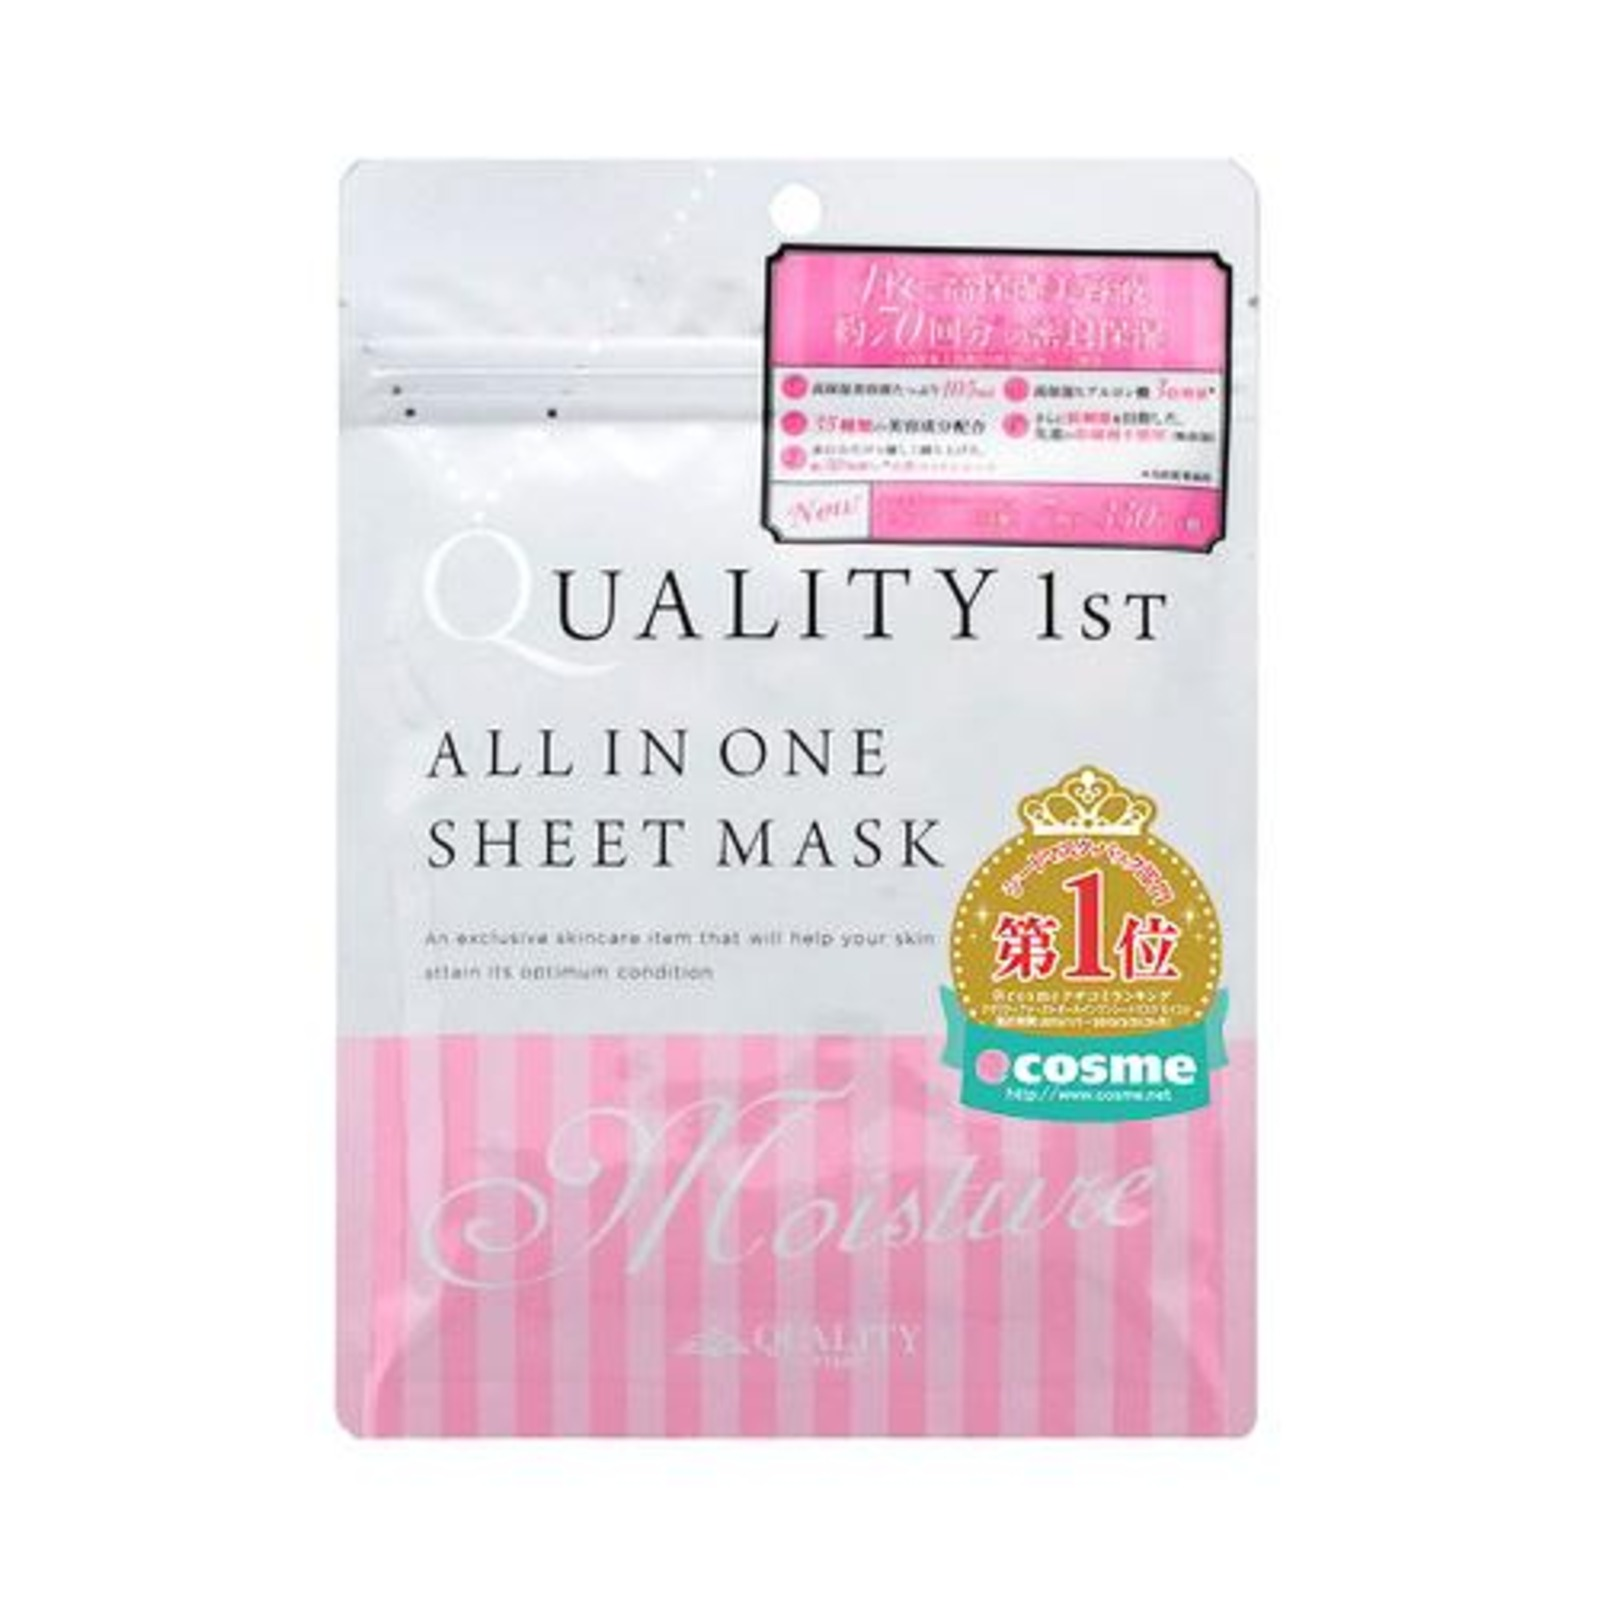 Quality 1st Quality 1st All In One Face Mask Moisture 7s